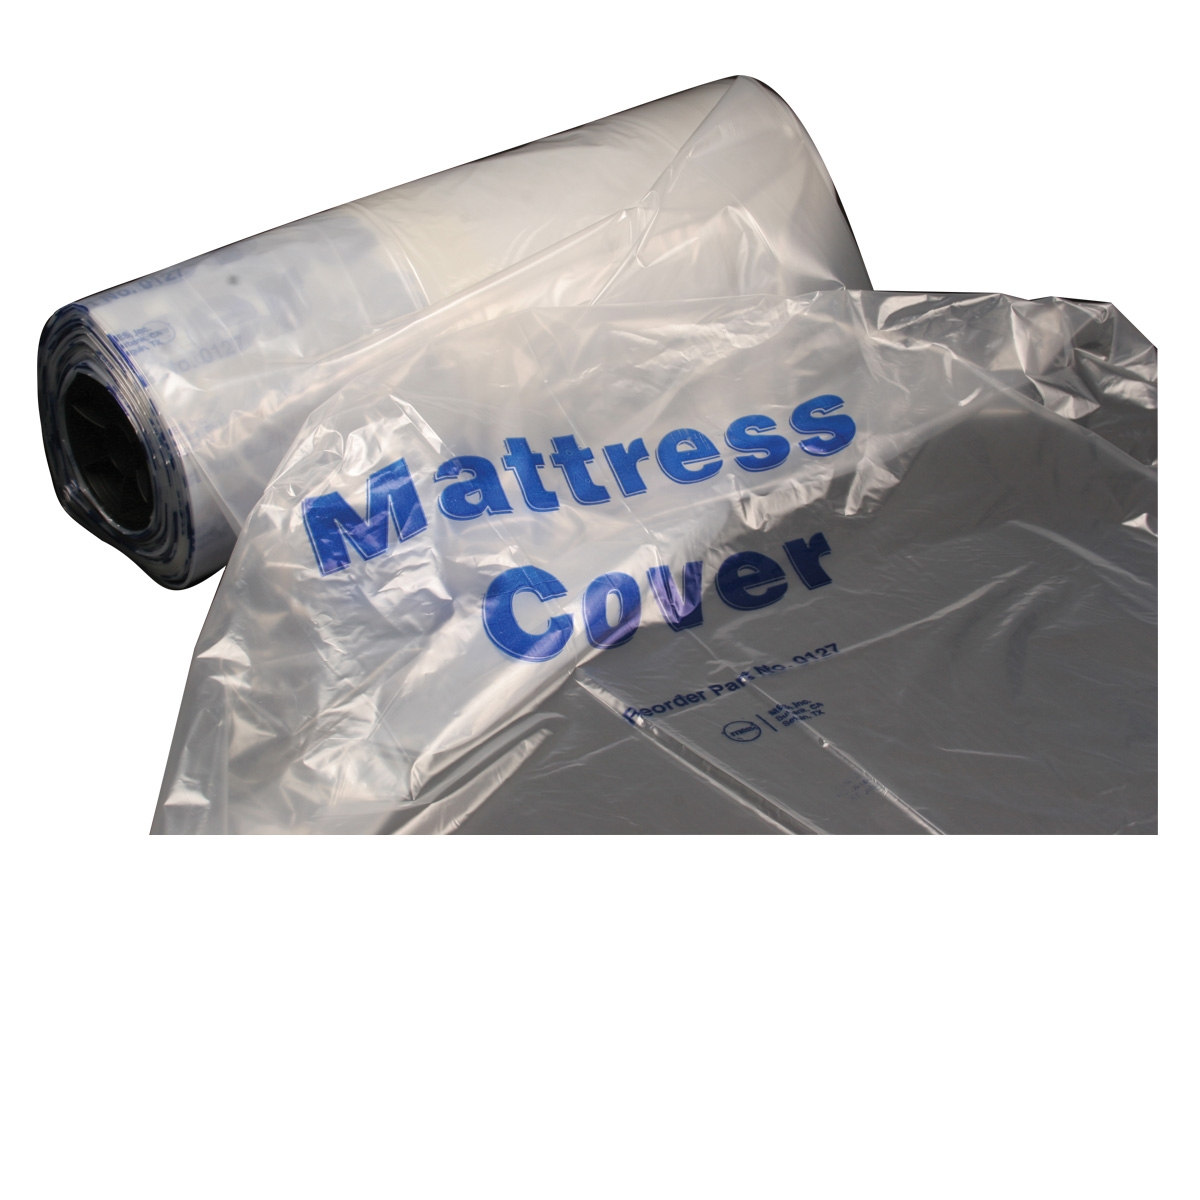 covers plastic mattresscovers htm mattress cover